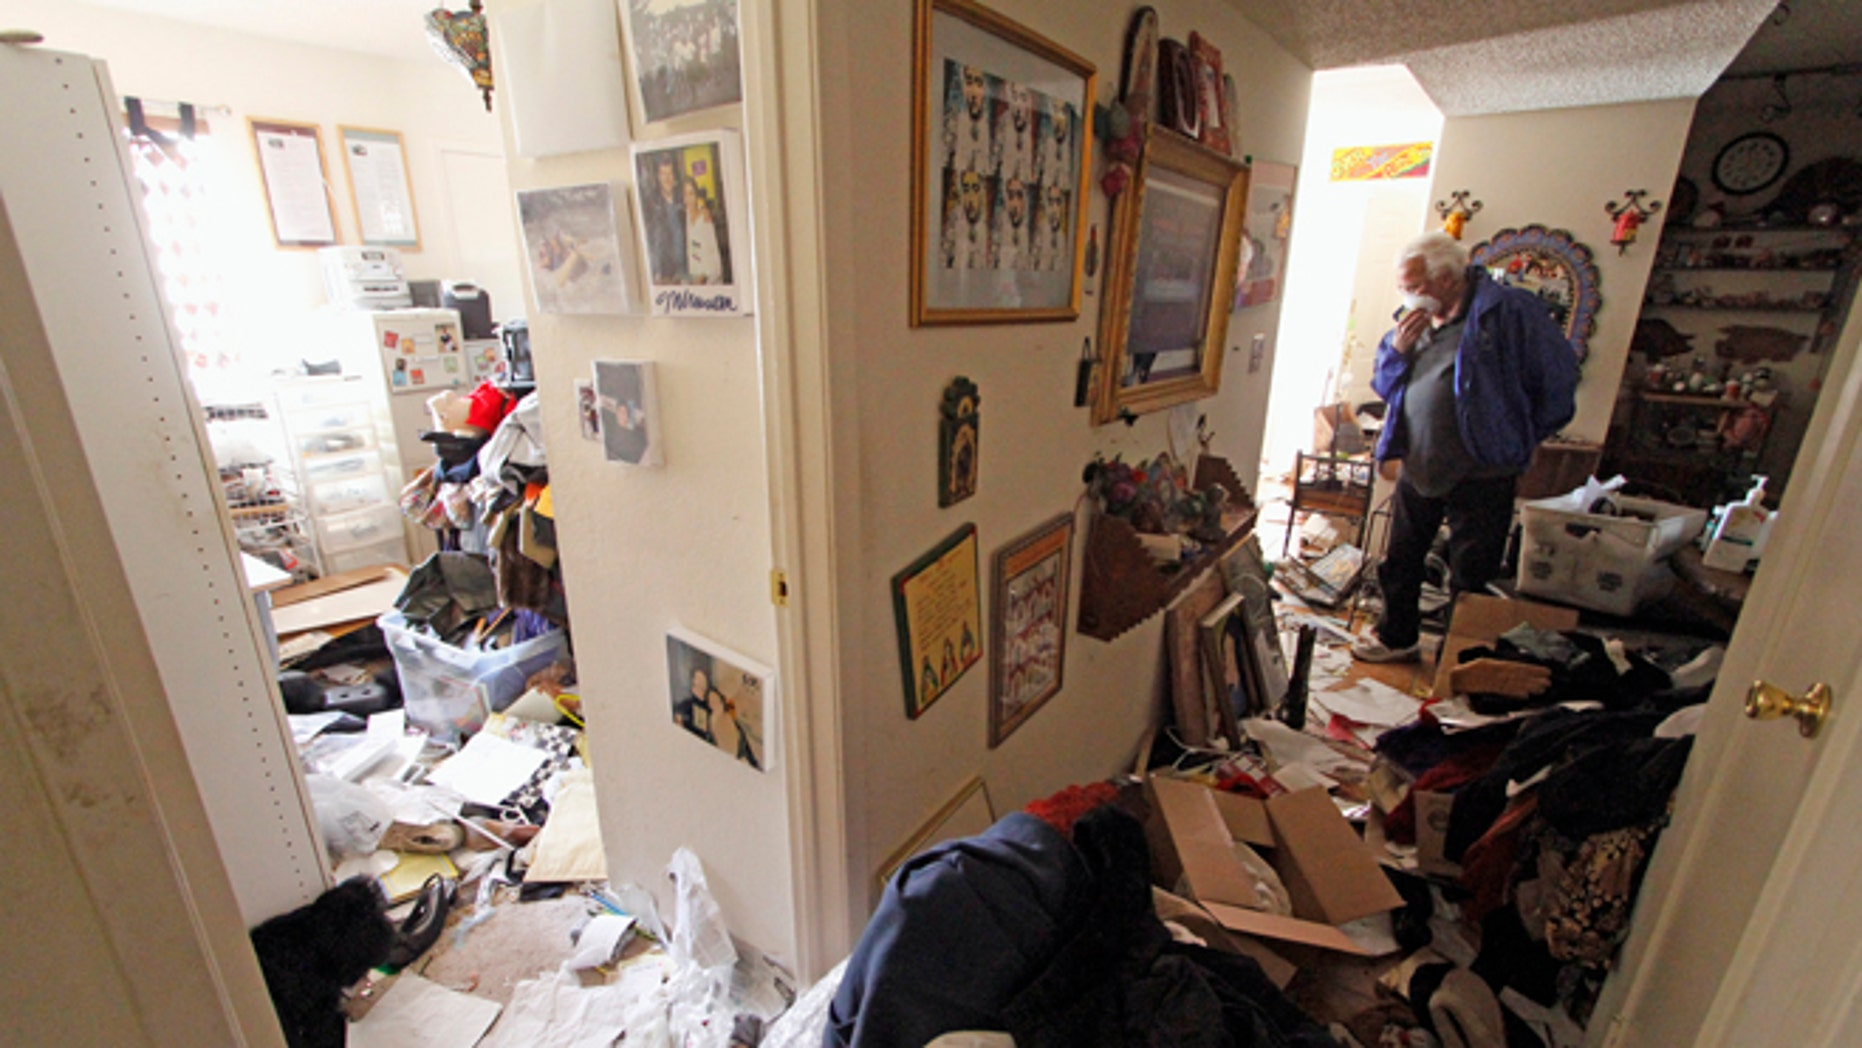 May 10, 2013: Louis Ponce, brother-in-law of Bobbi Salinas-Norman, walks through the apartment where Salinas-Norman was found dead.   Ponce discovered the remains of Salinas-Norman, a Chicana activist, teacher and author, last week and authorities say she may have been dead for more than a year.    (AP)